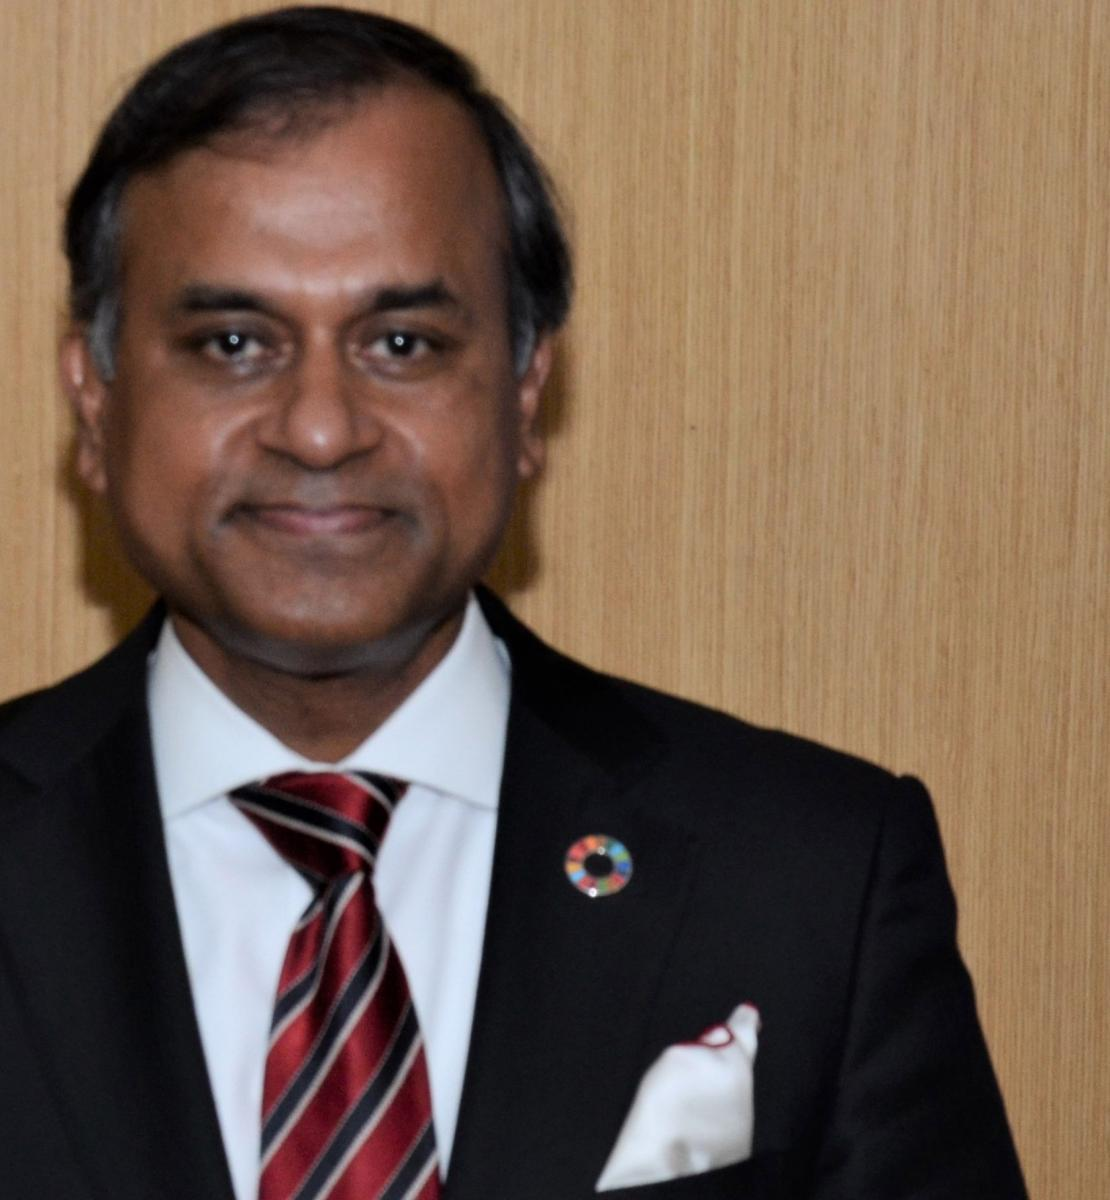 Official photo of the new appointed Resident Coordinator for China, Siddharth Chatterjee.